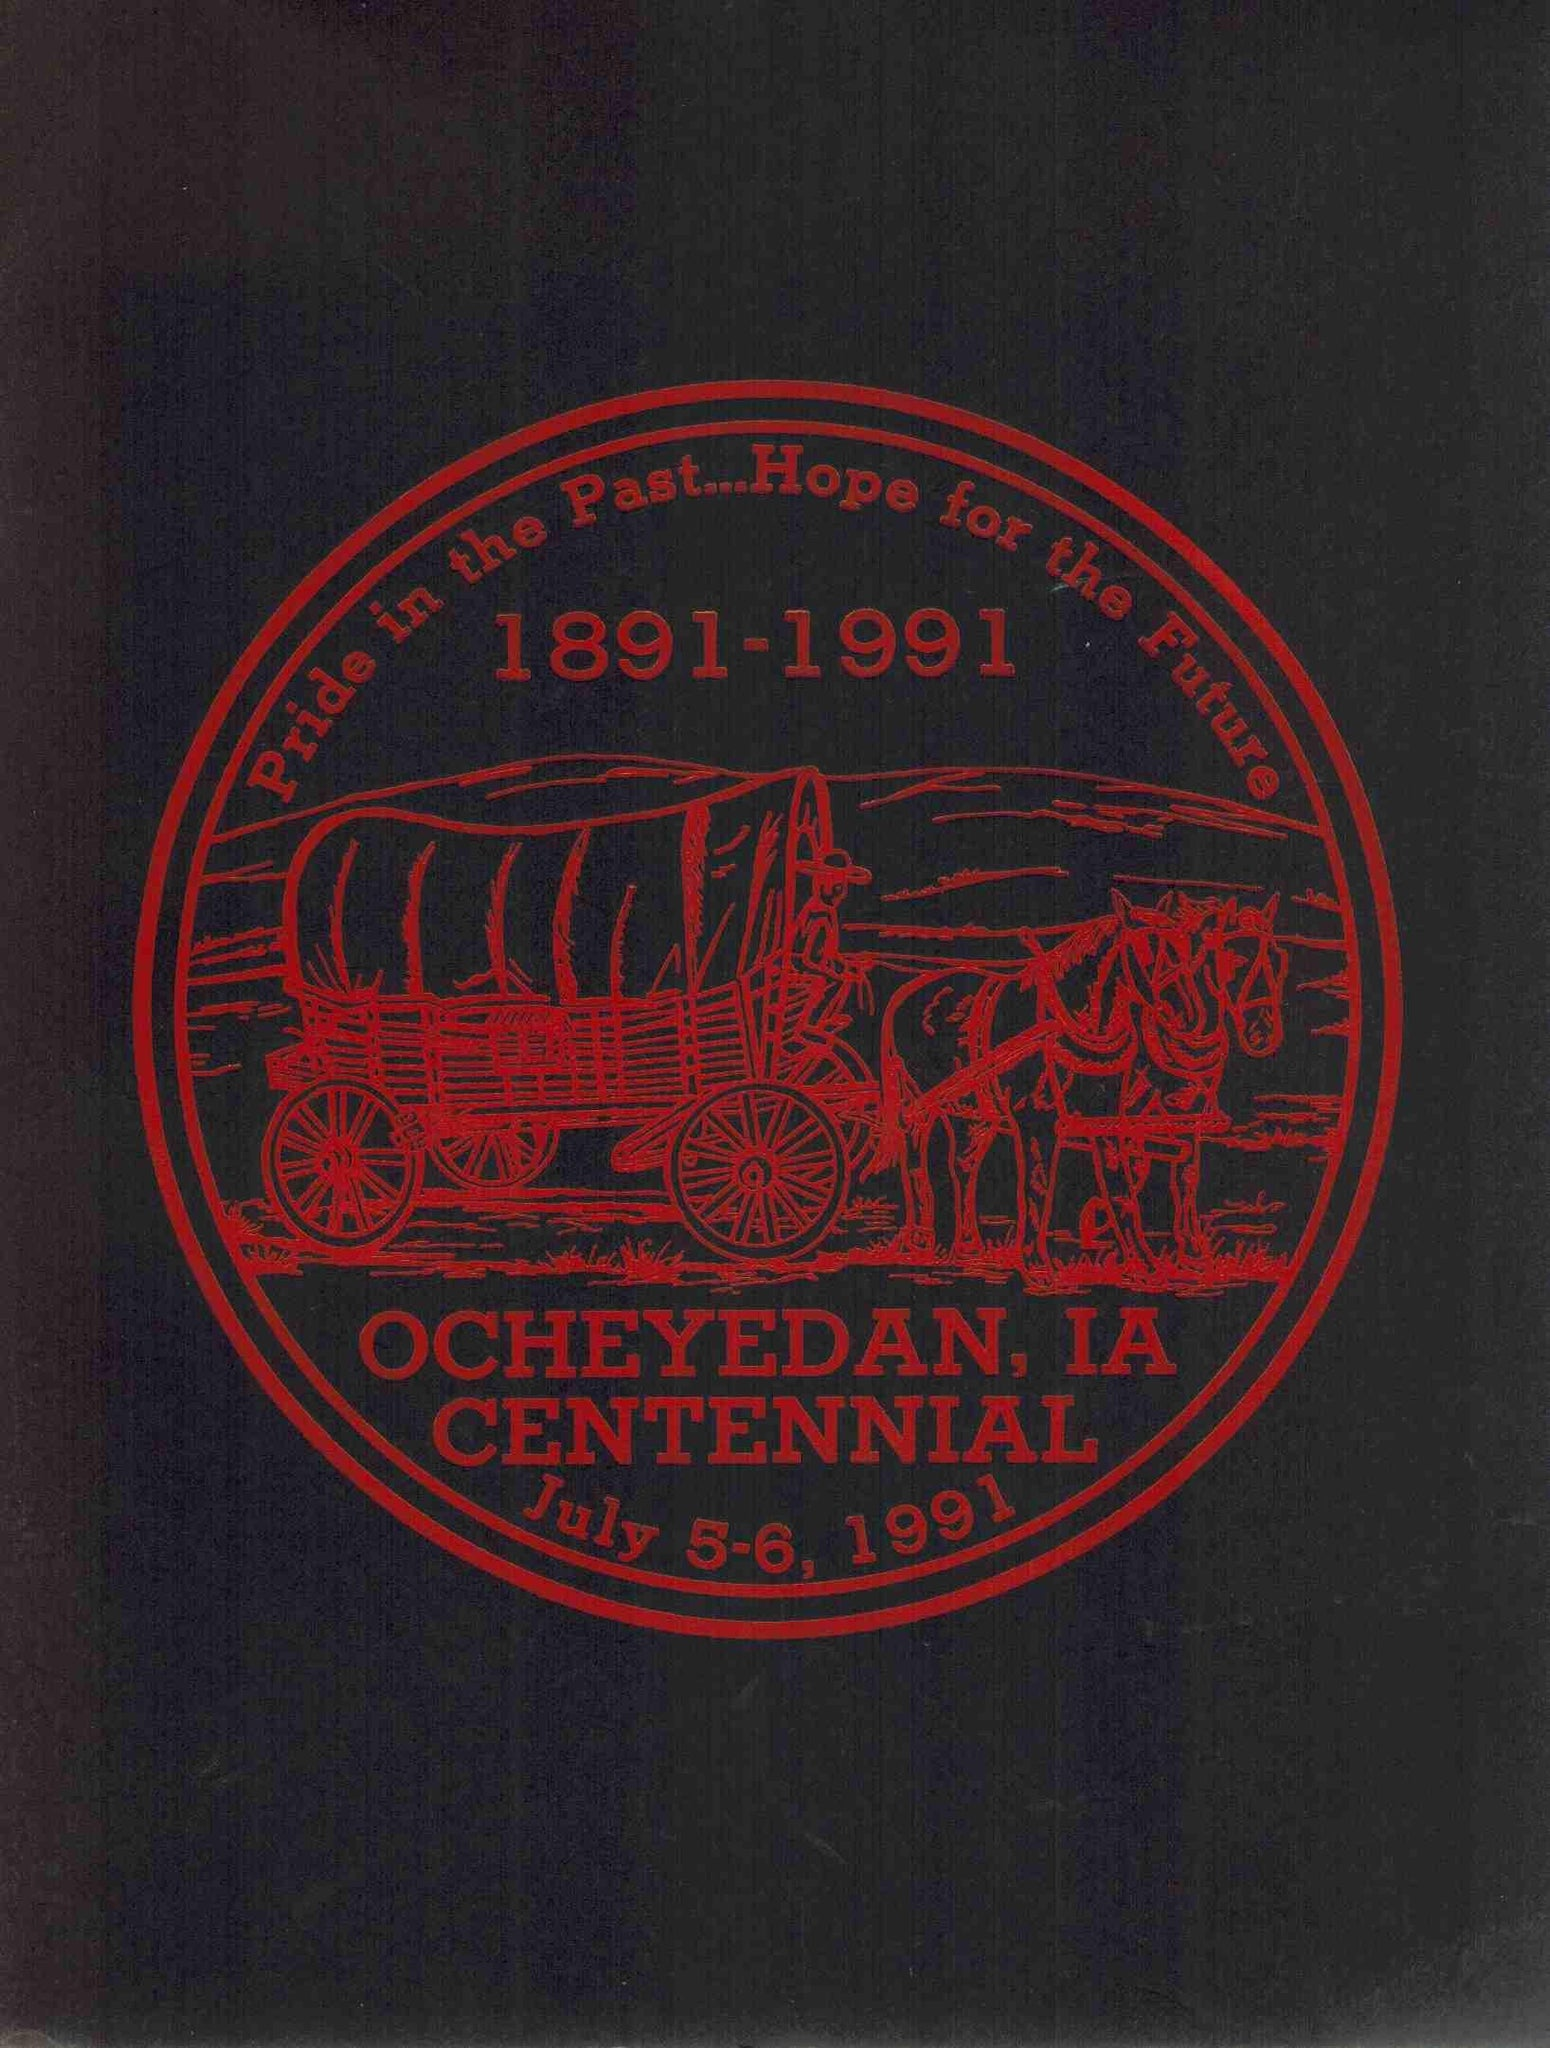 PRIDE IN THE PAST...HOPE FOR THE FUTURE 1891-1991:  Ocheyedan, Ia  Centennial - books-new